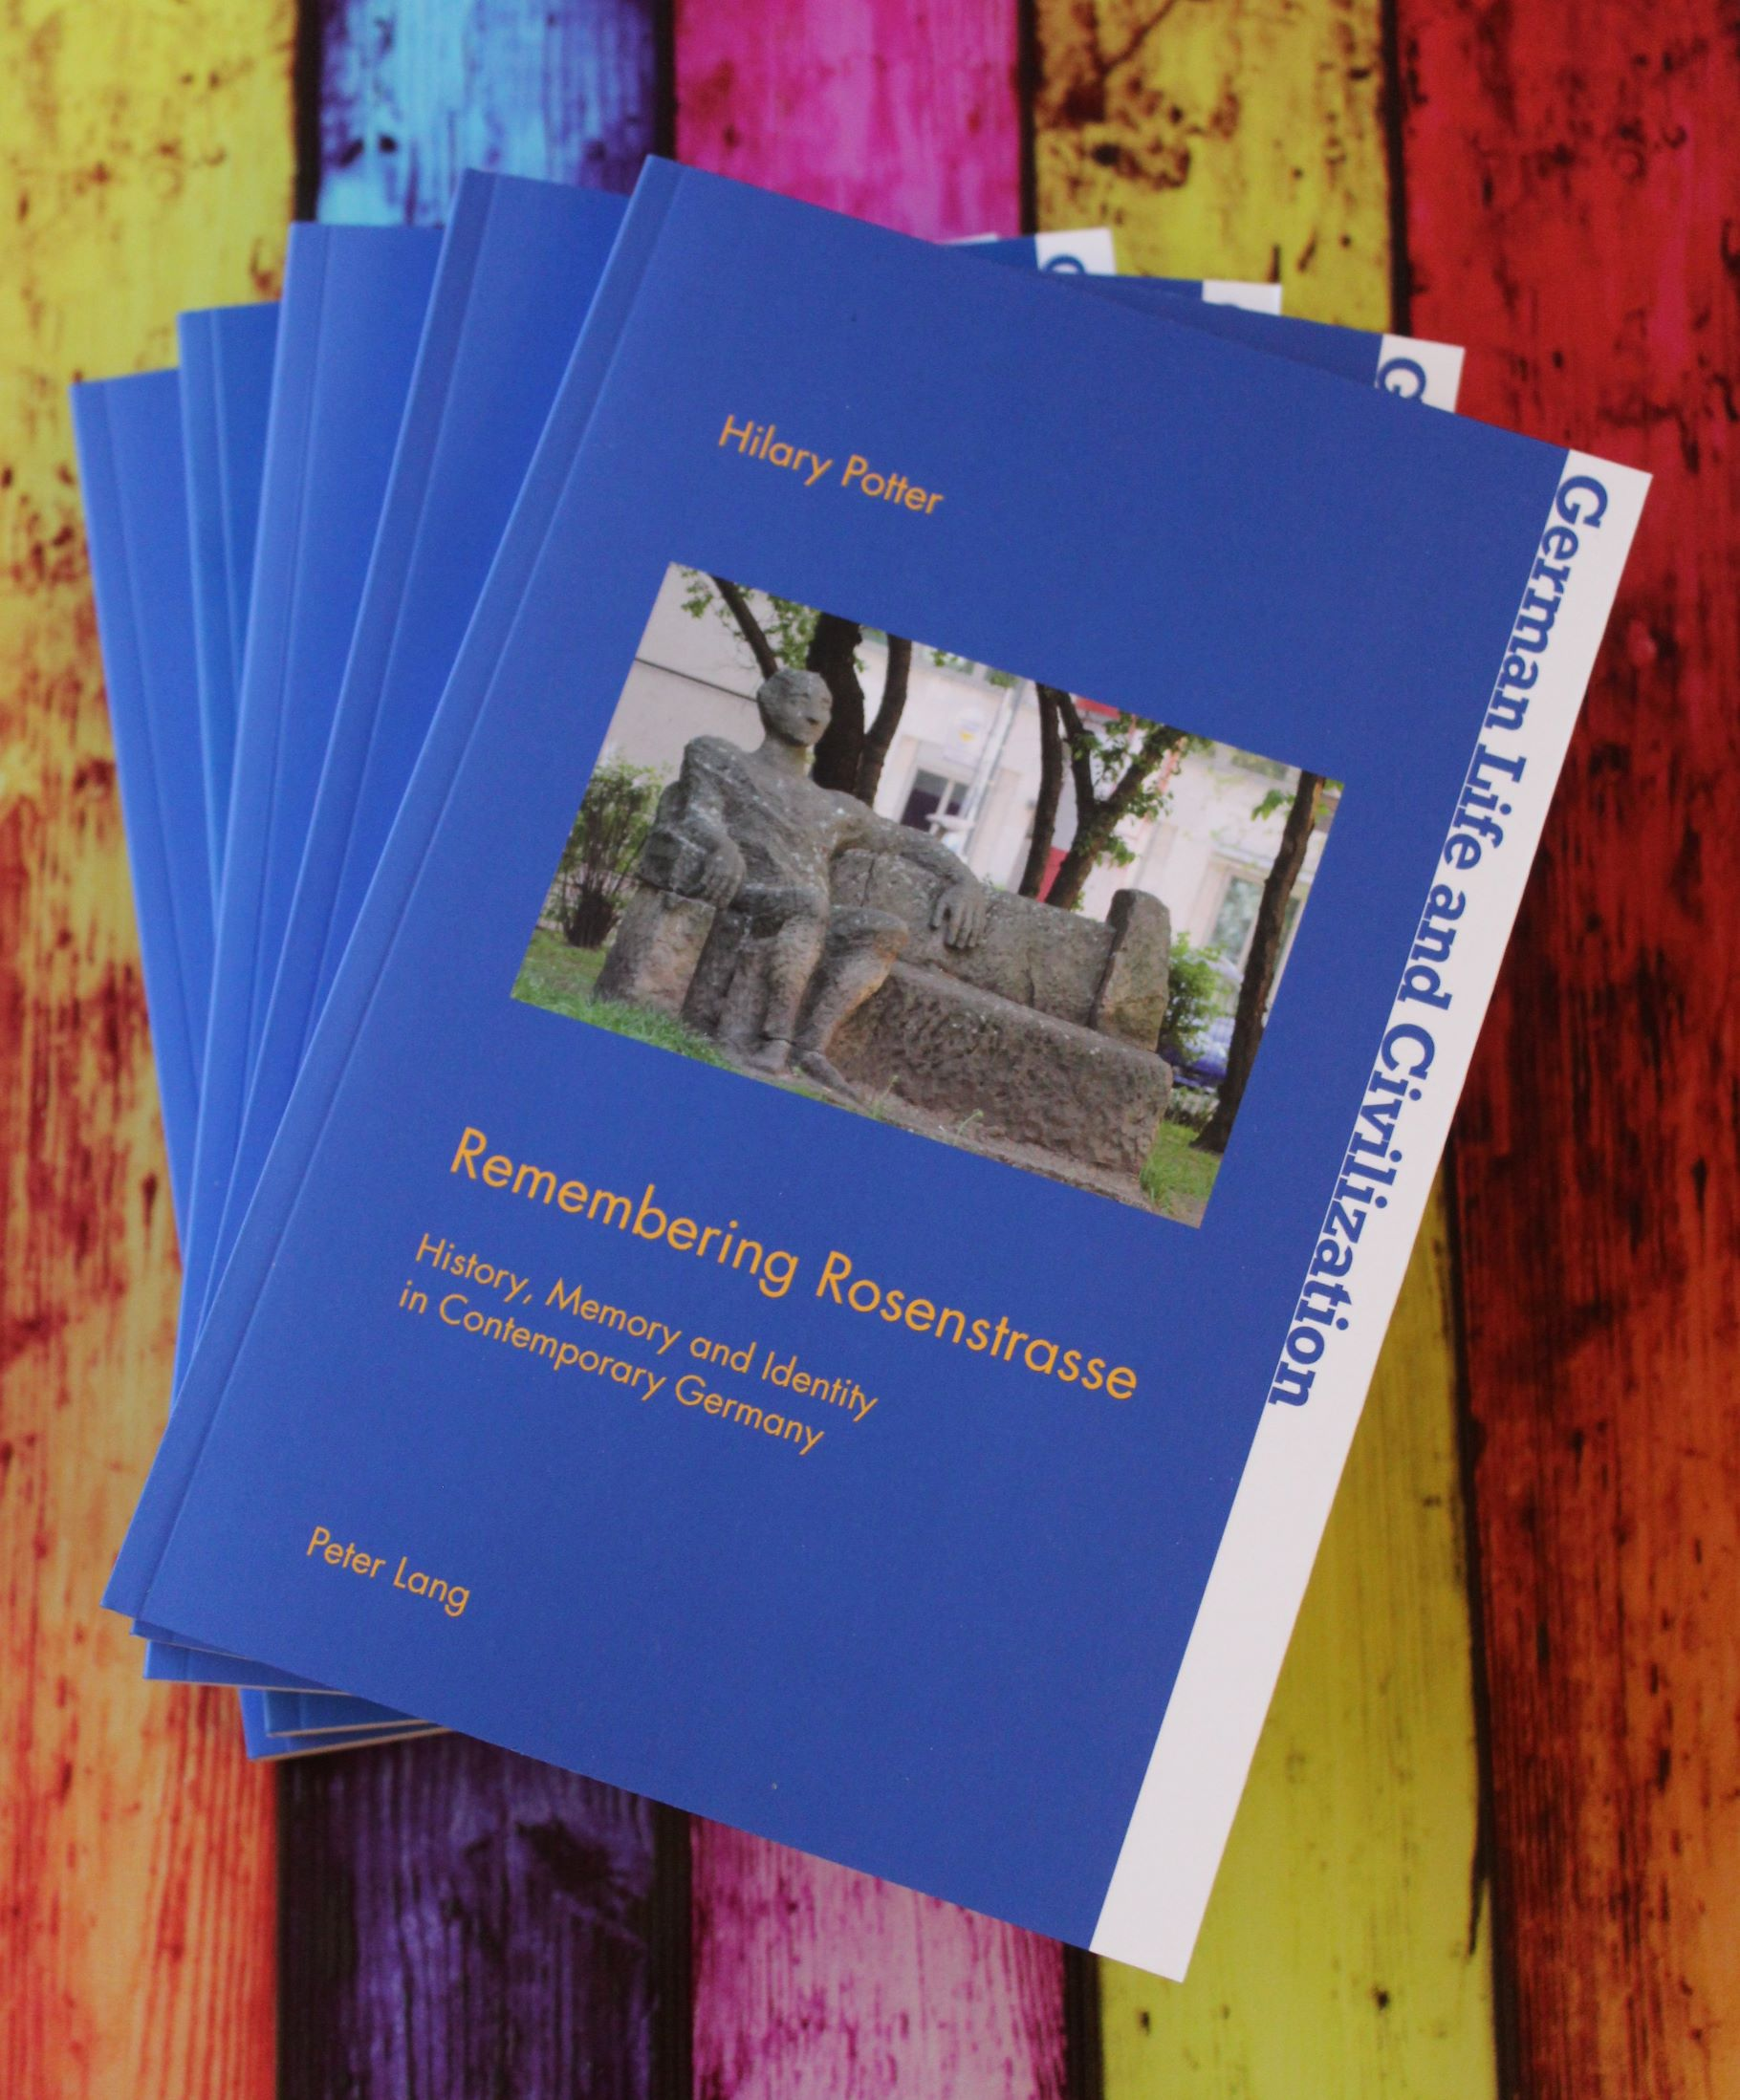 Remembering Rosenstrasse History Memory Identity in Contemporary Germany